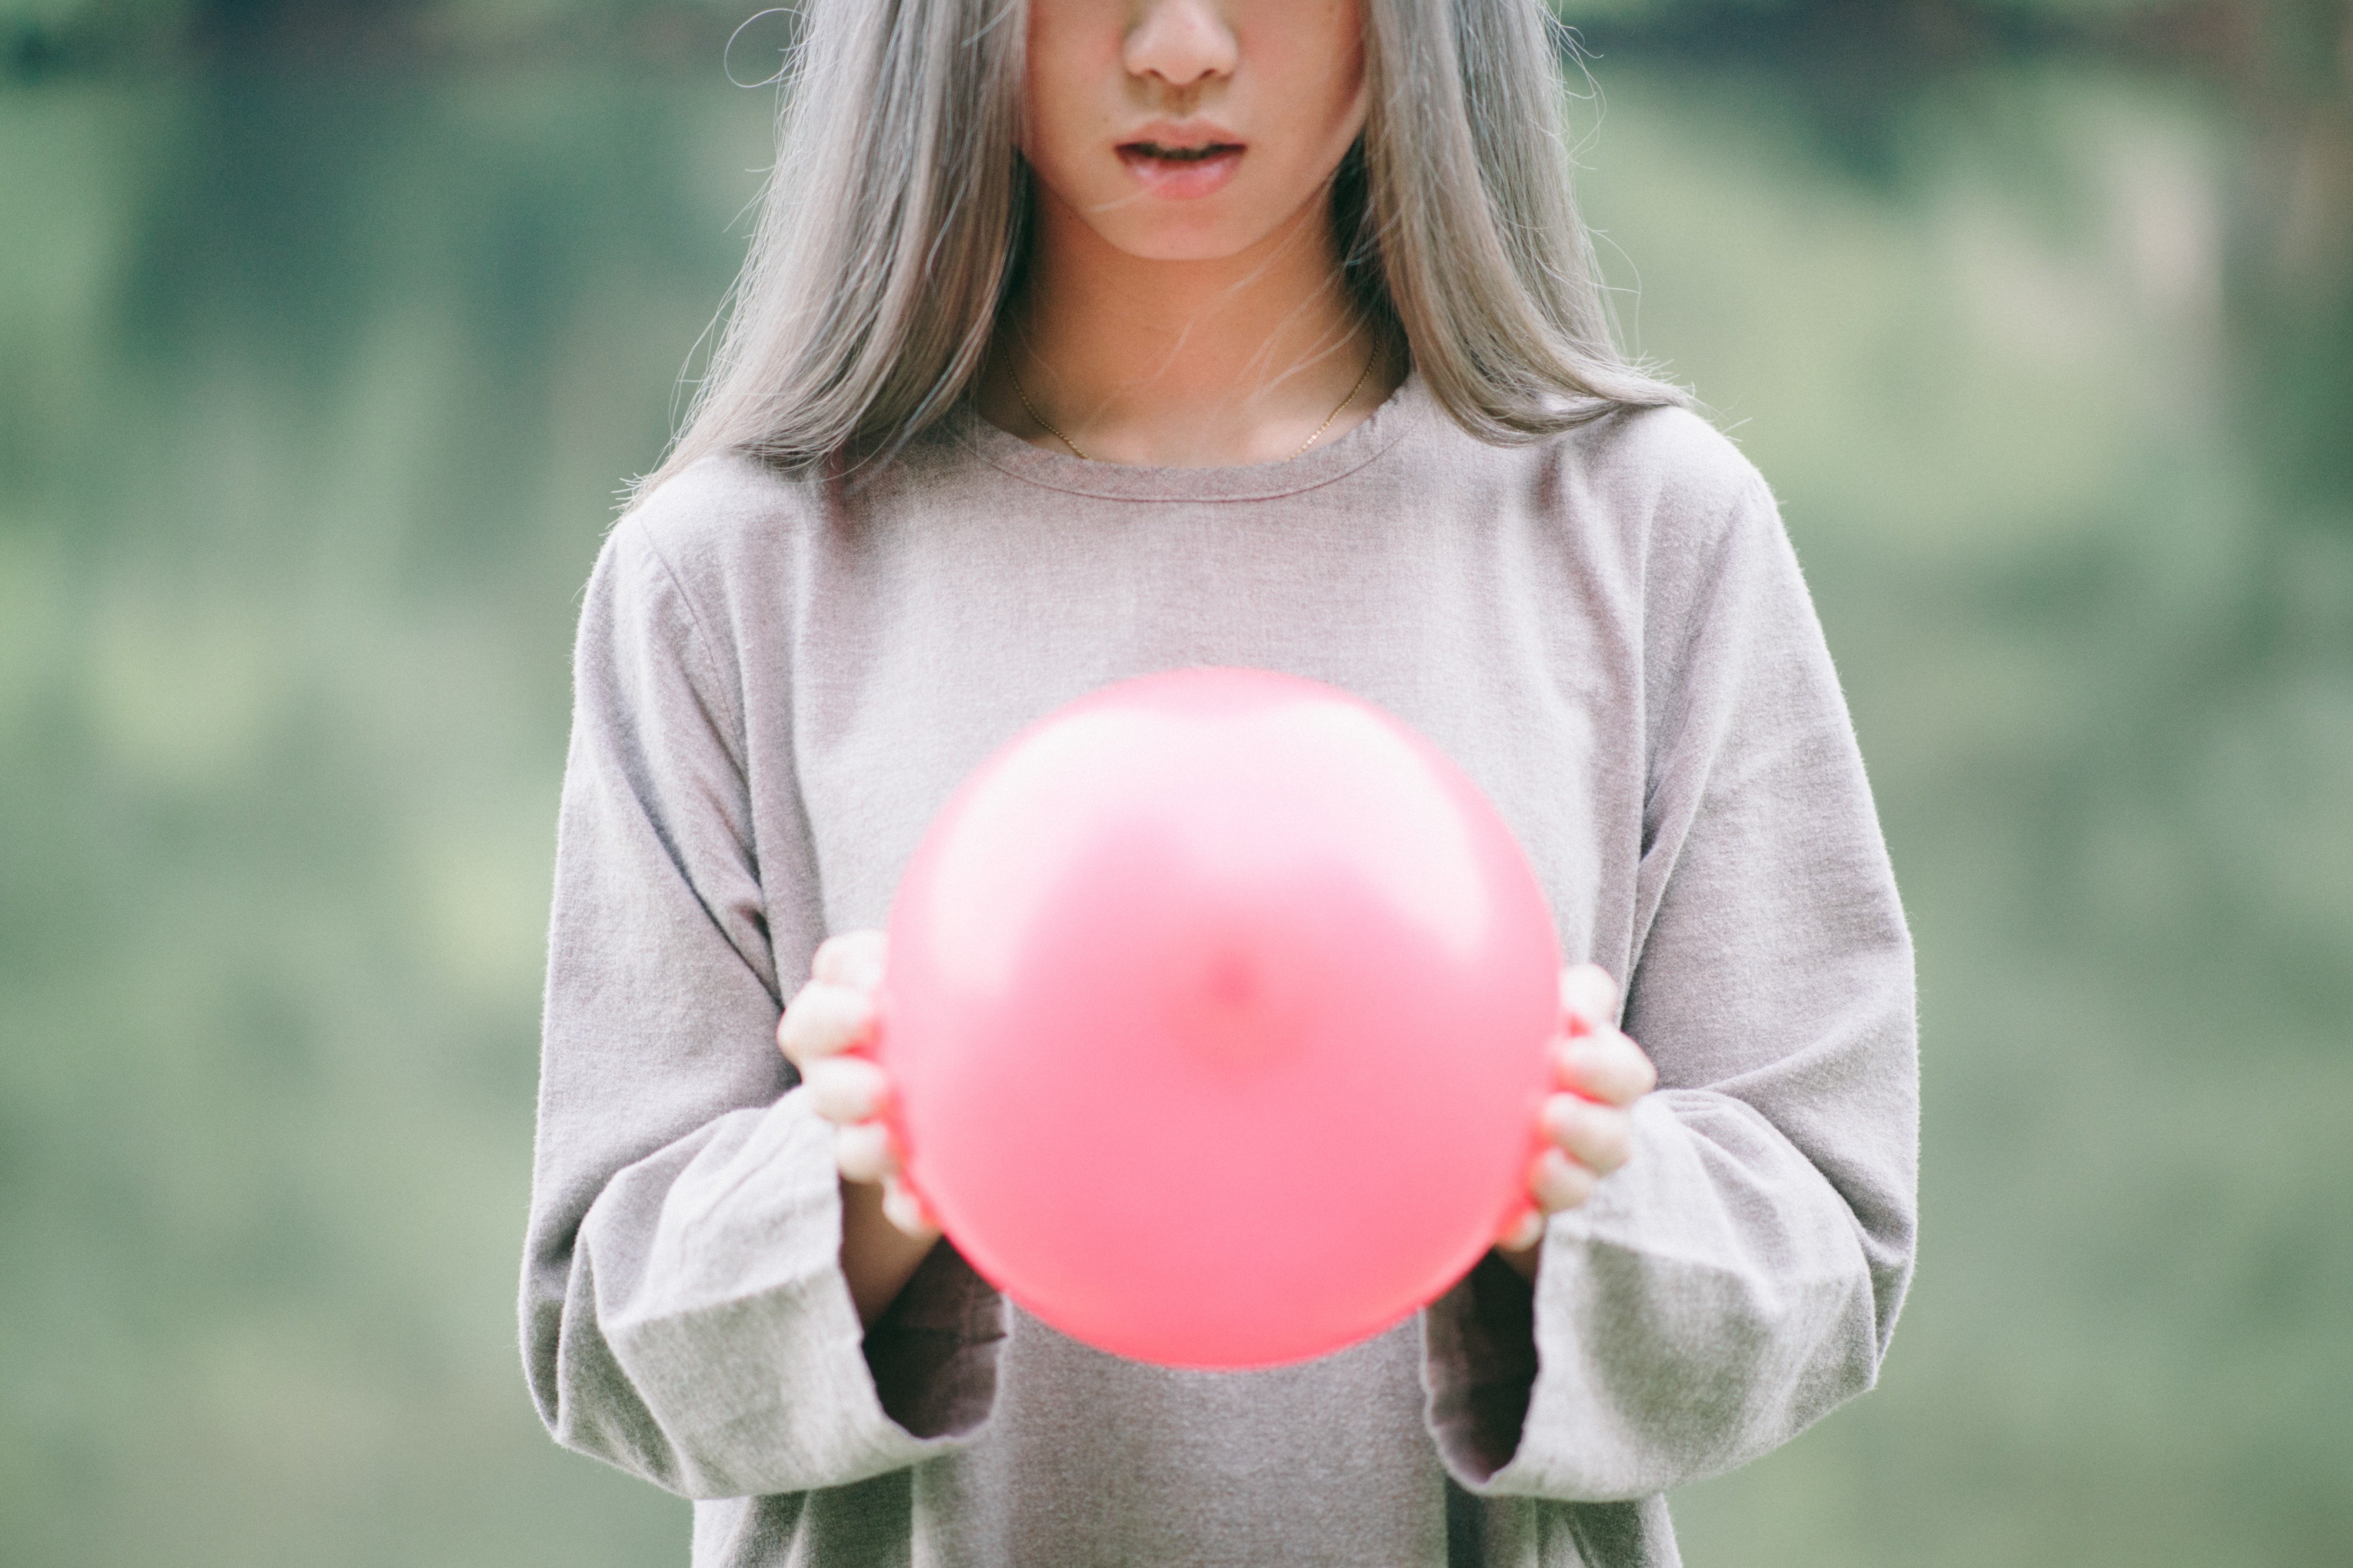 woman with long silver hair holding pink beach ball